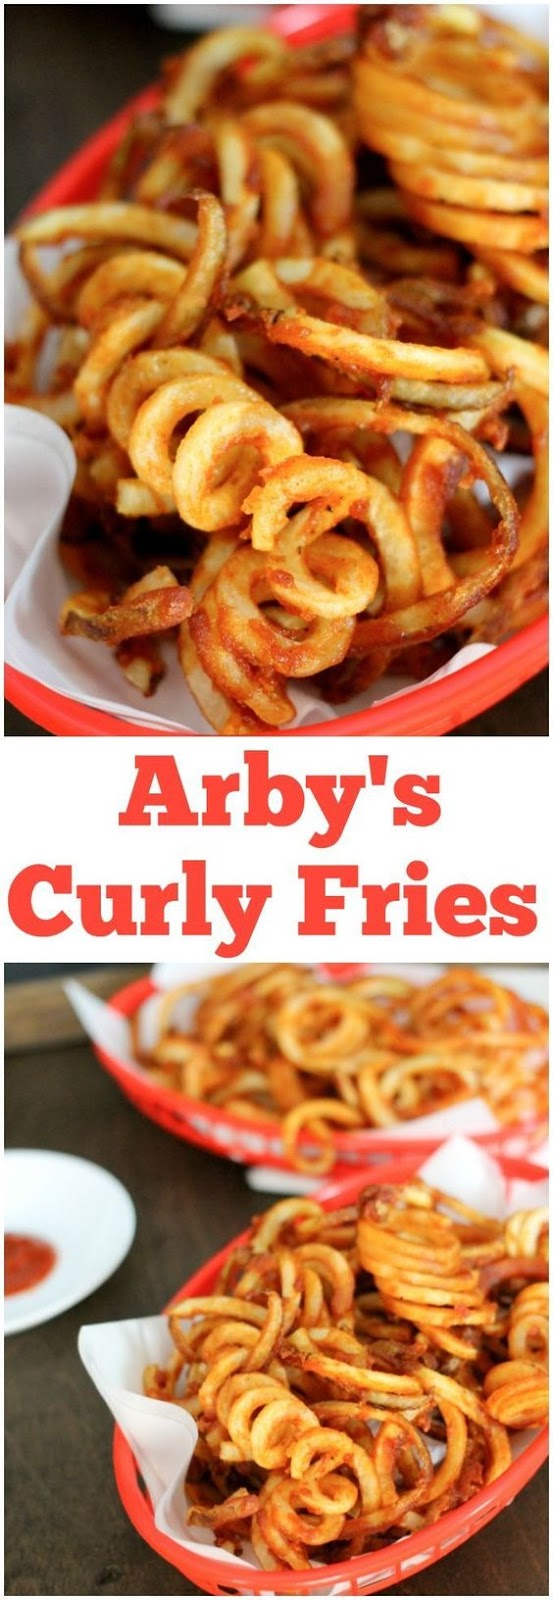 Arby's Curly Fries (Copycat)